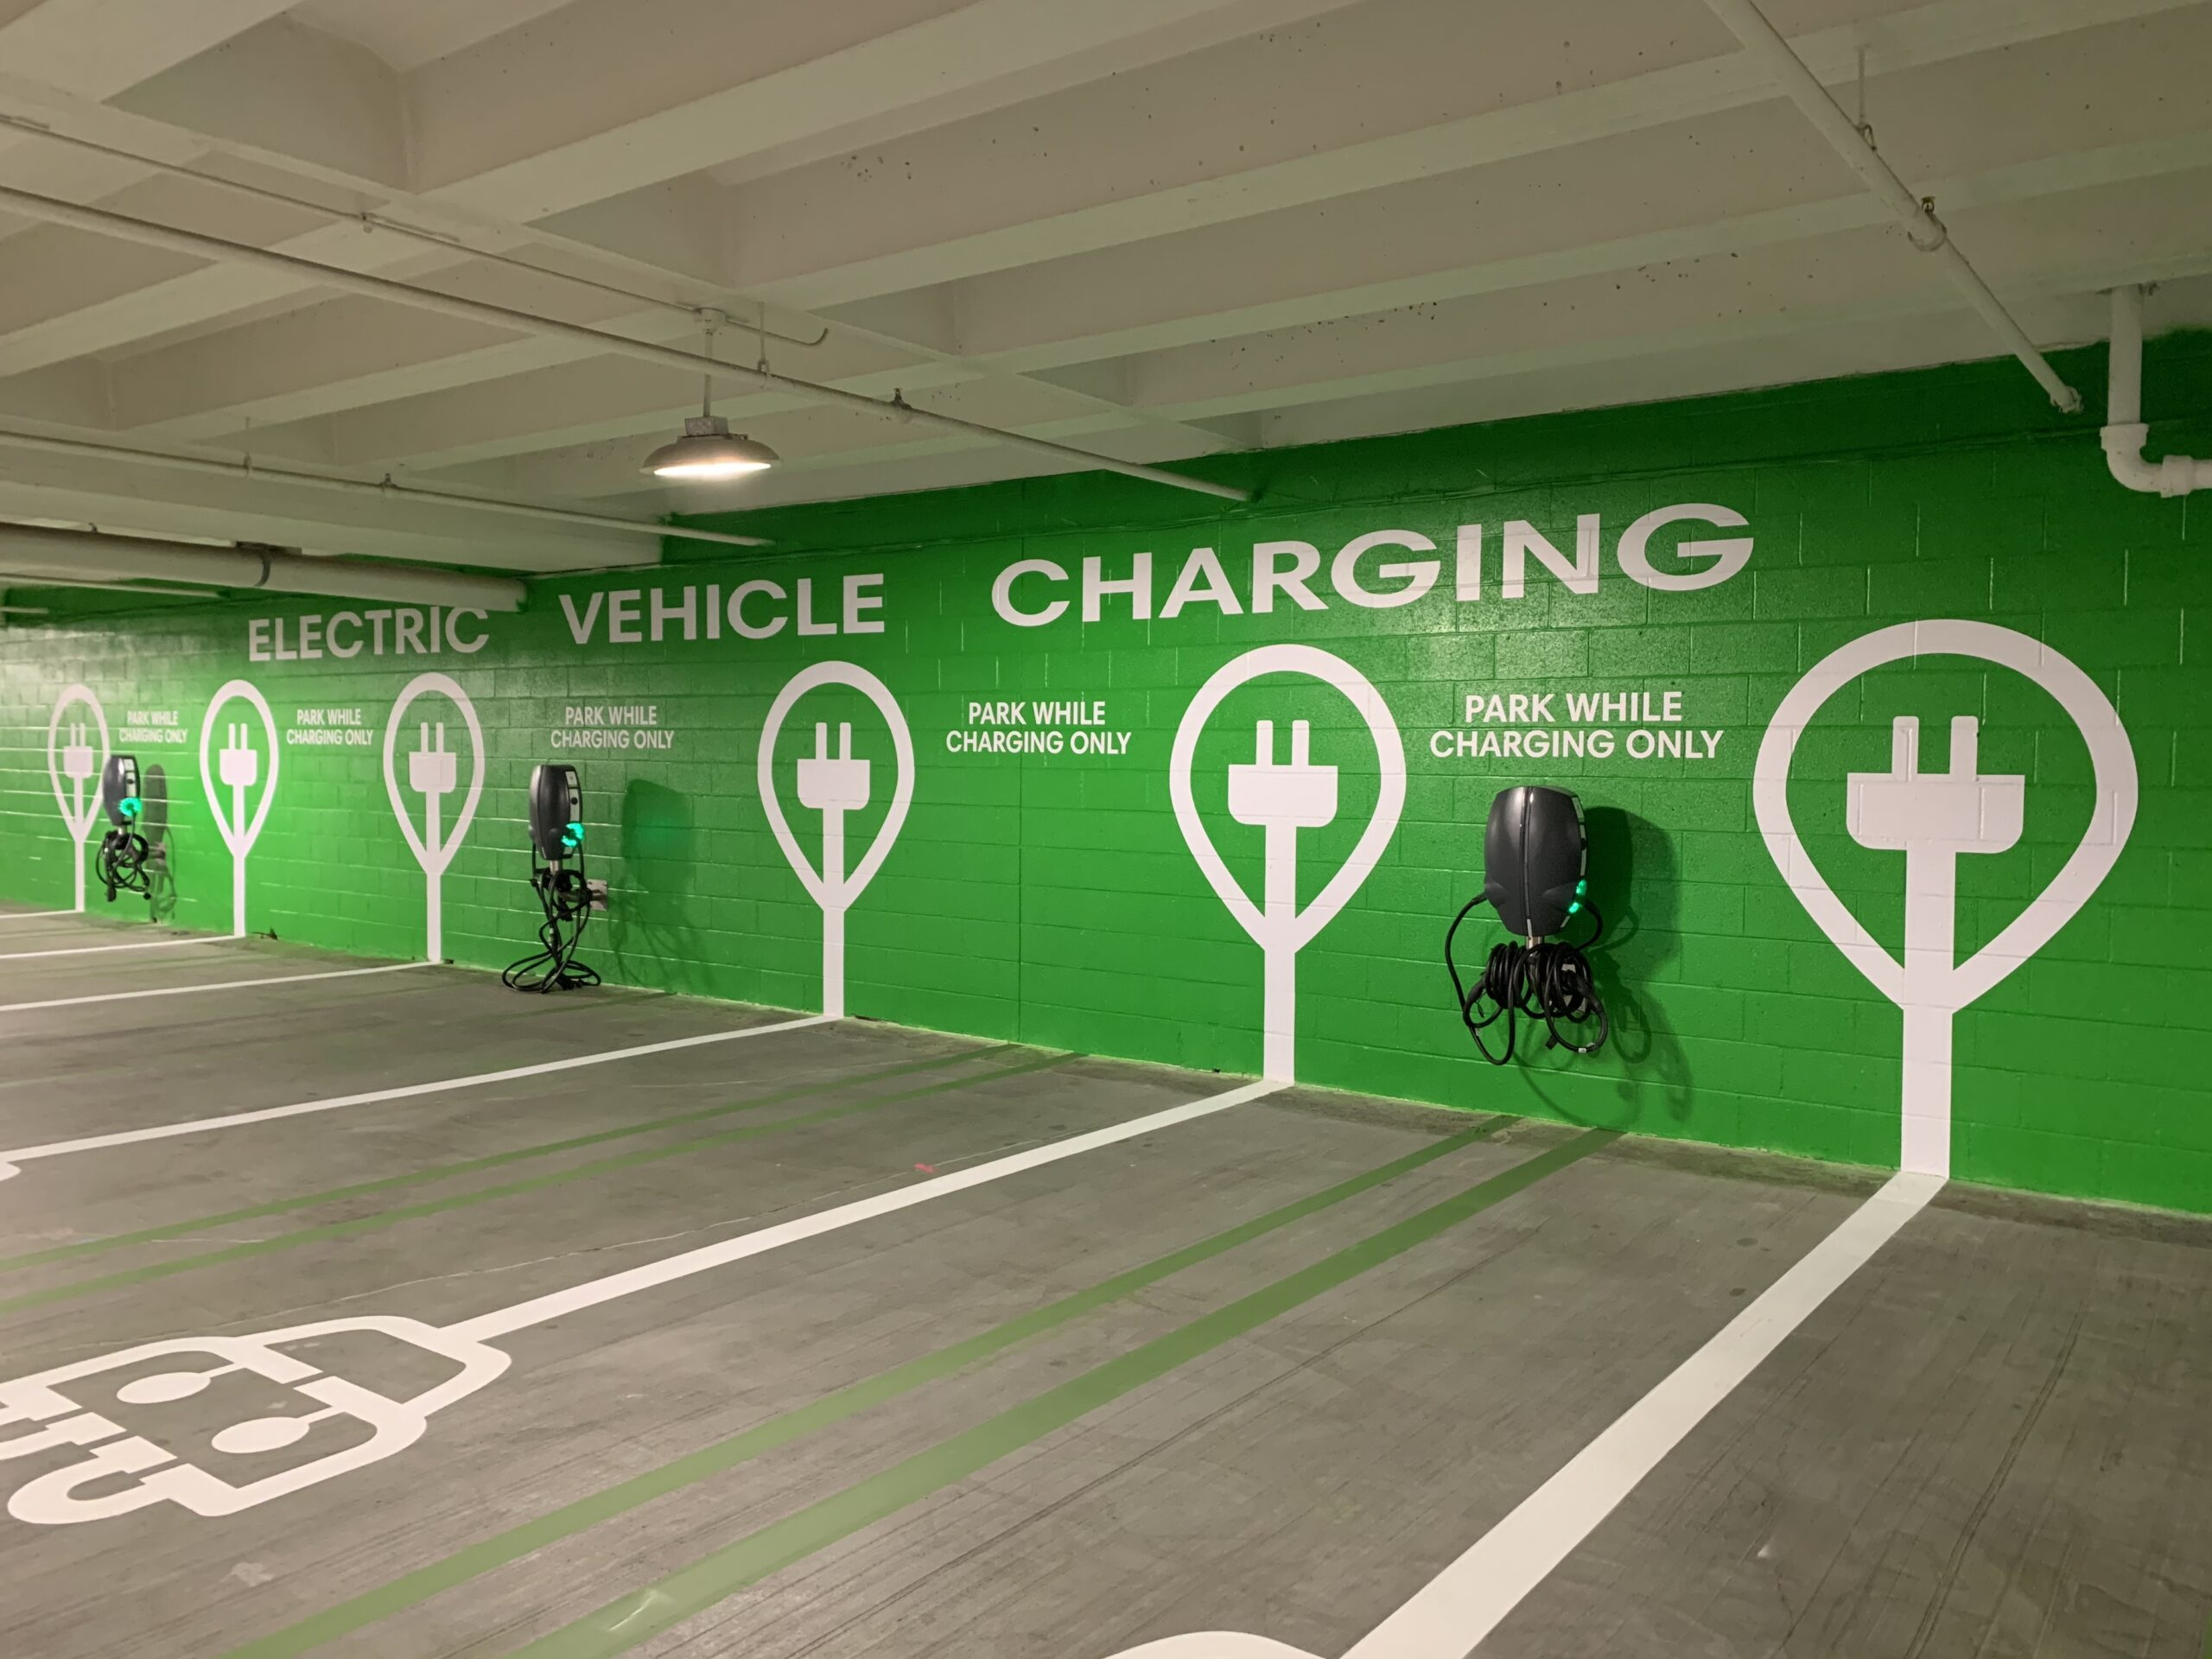 The wall of a parking garage is painted green to show that it is an electric charging station.